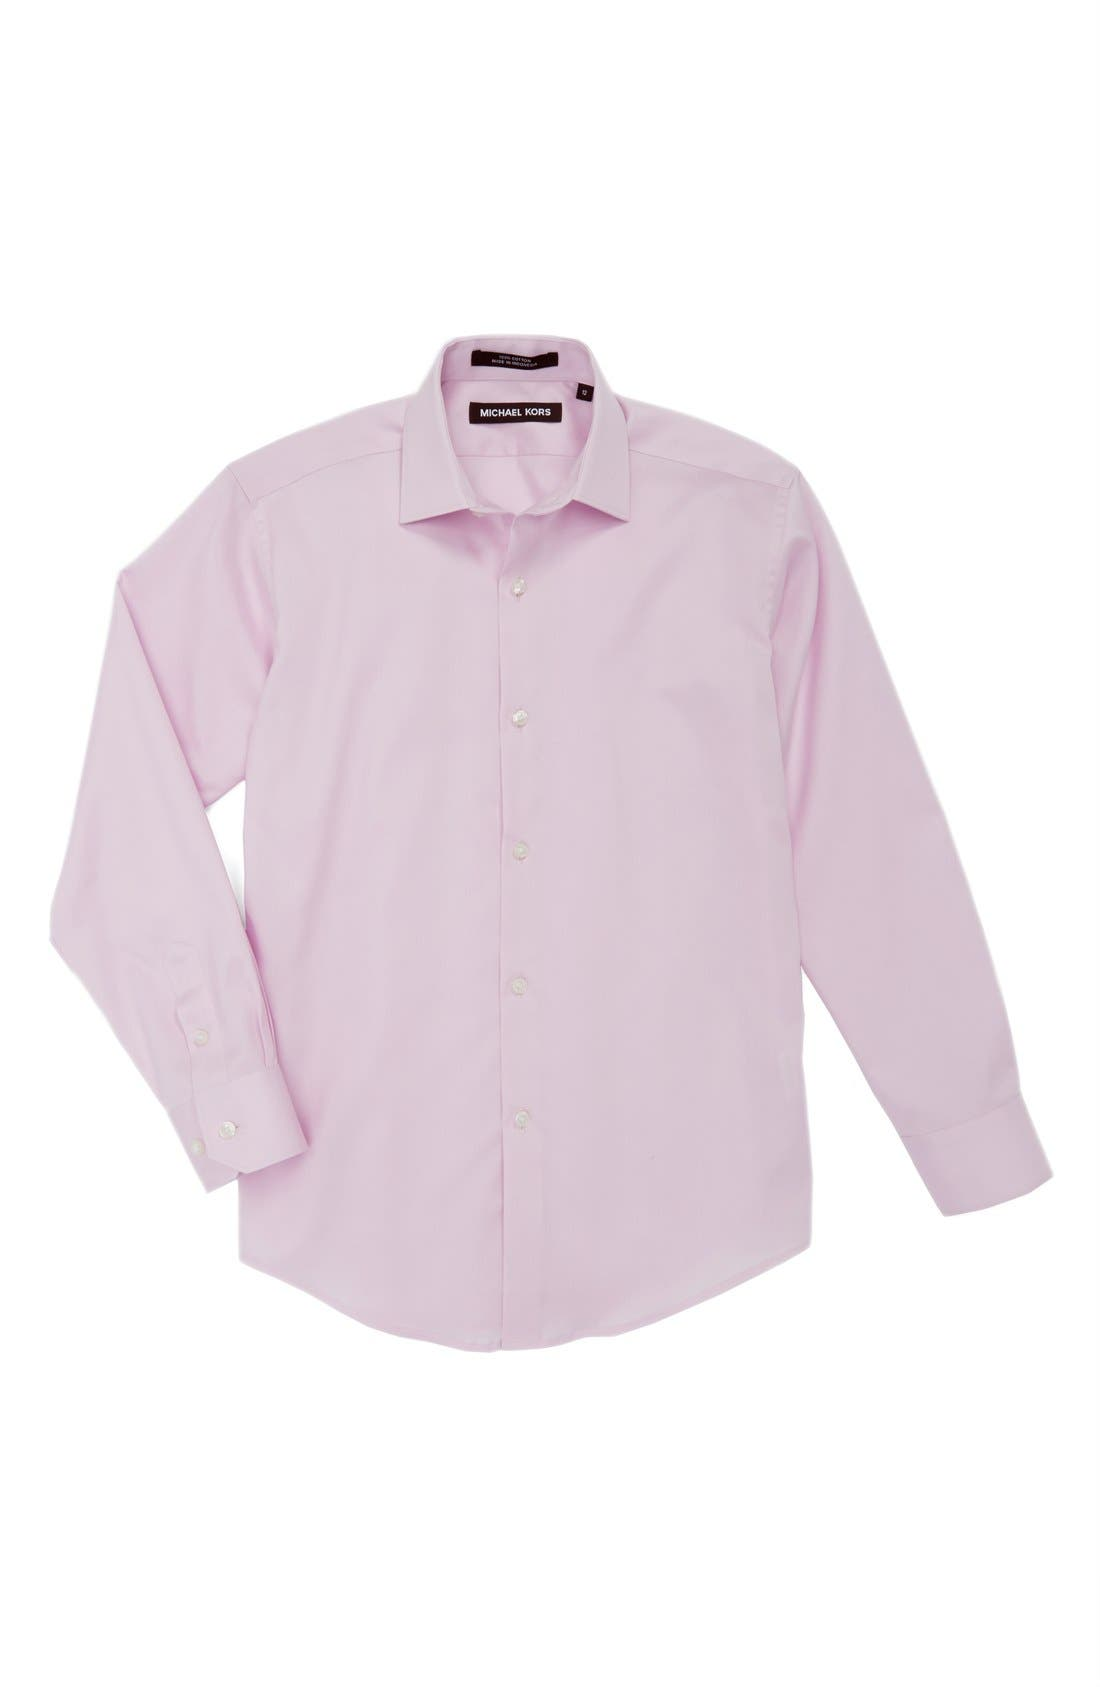 MICHAEL KORS Woven Cotton Dress Shirt, Main, color, ROSE